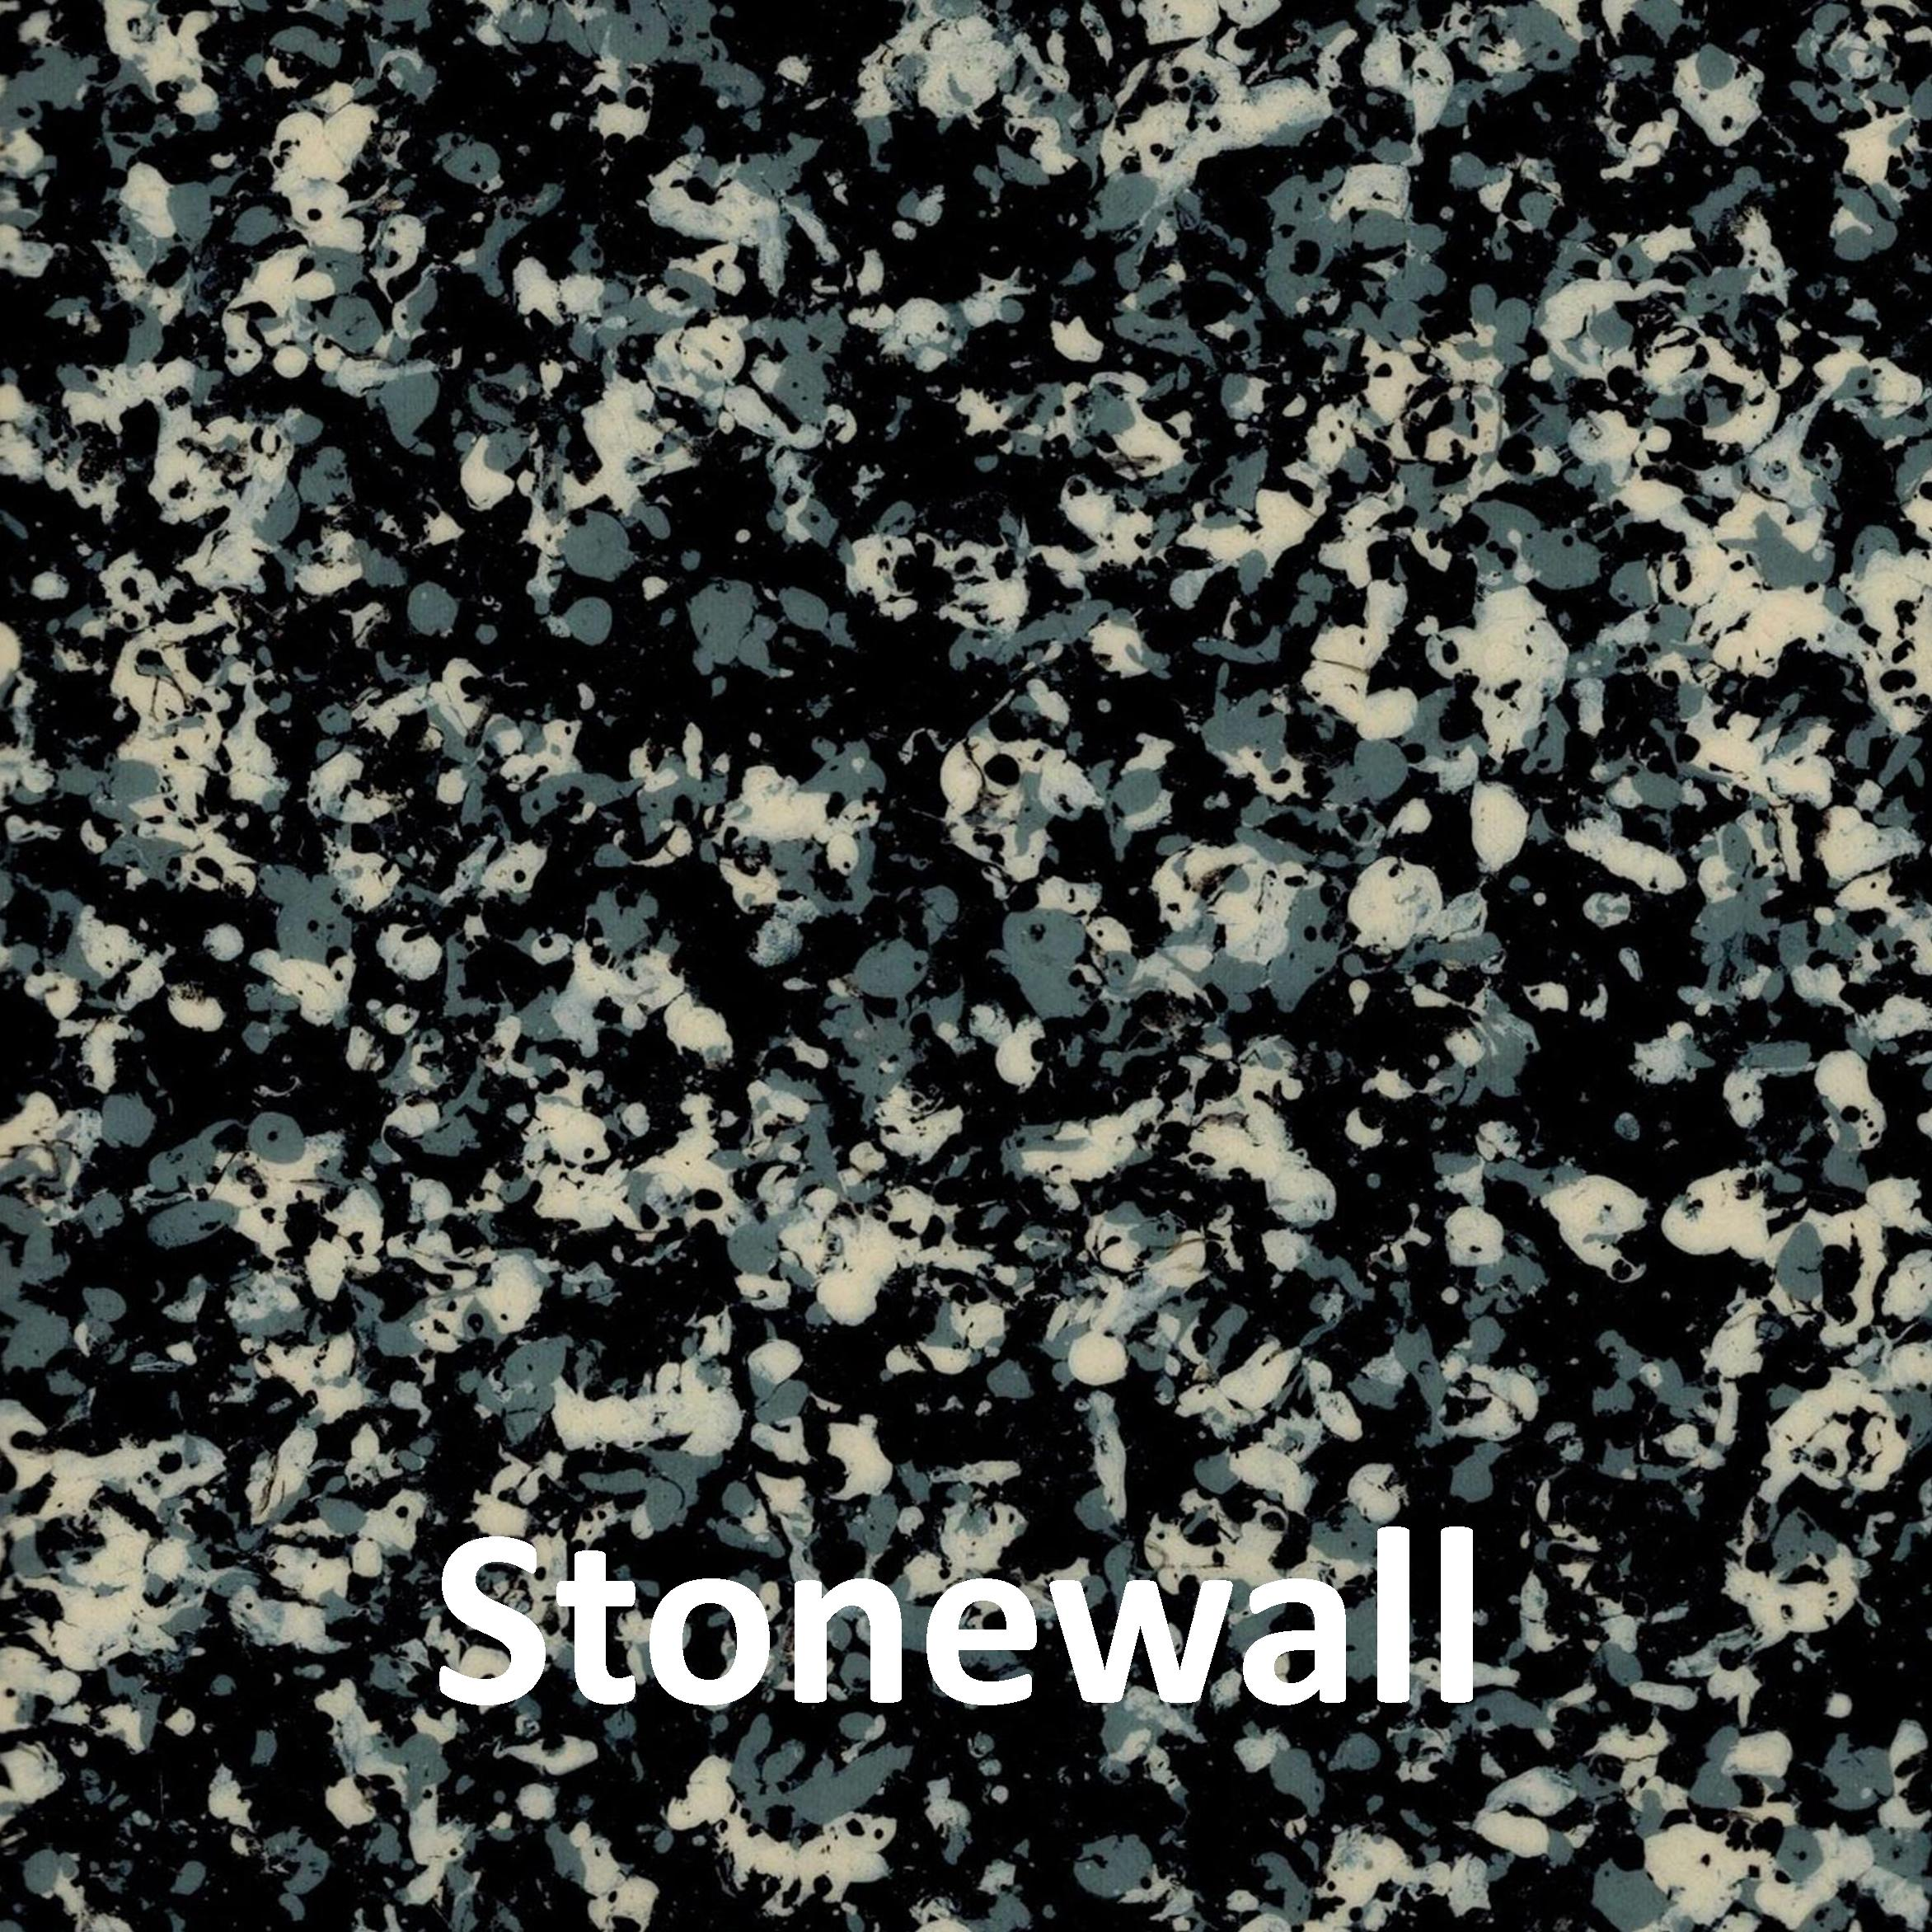 stonewall-label.jpg